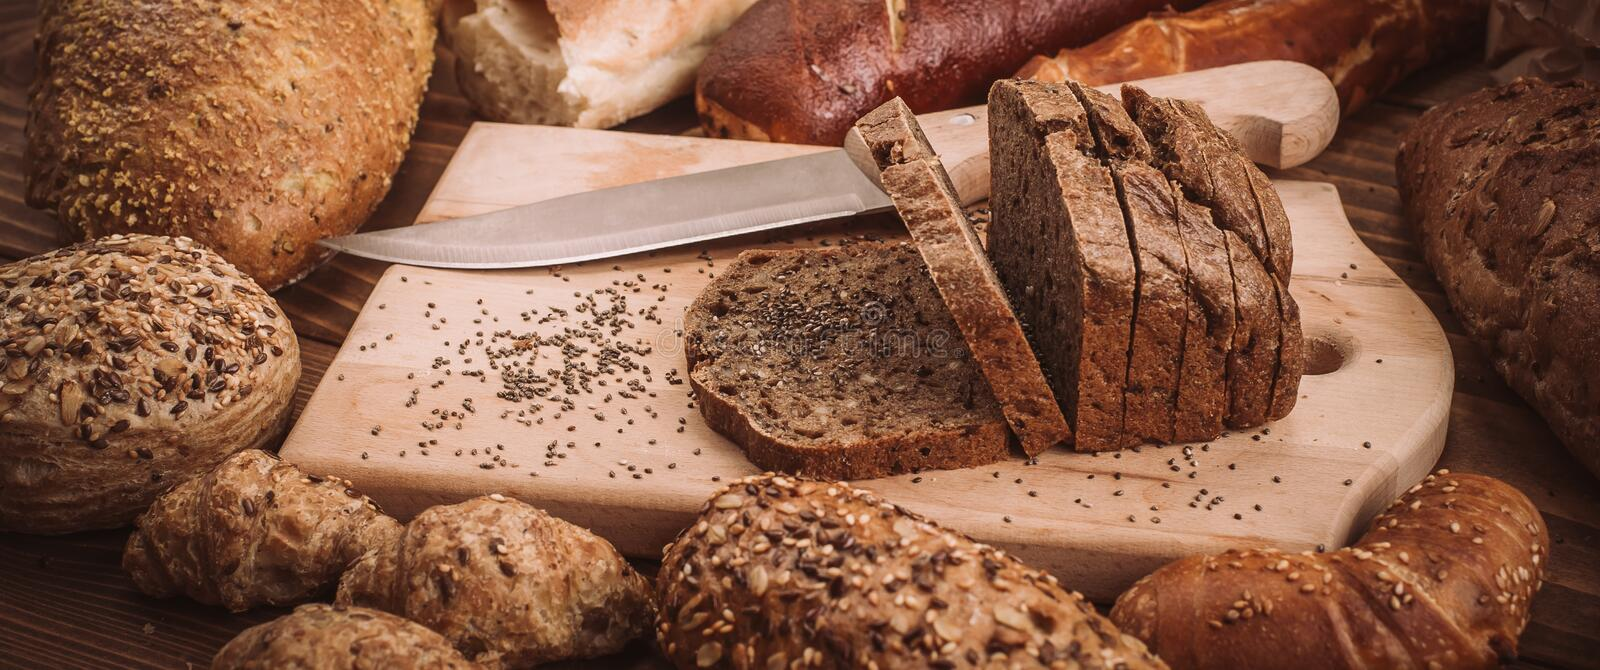 Various baked breads and rolls on rustic wooden table stock image